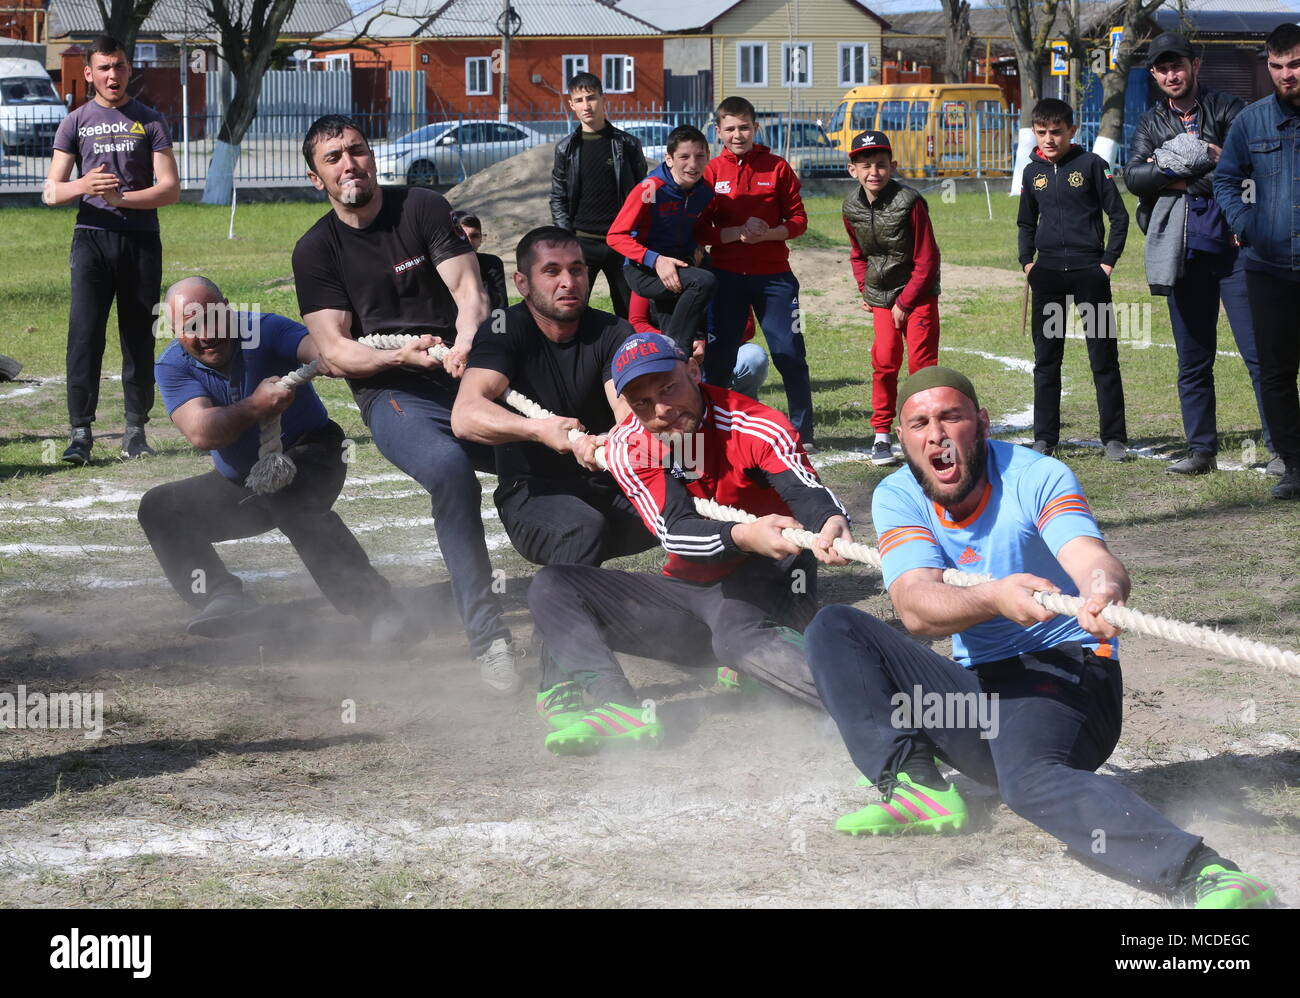 Russia. 15th Apr, 2018. CHECHNYA, RUSSIA - APRIL 15, 2018: Men compete in a tug of war contest as part of the first Republican Cossack Games held by the Terek Cossacks community in the village of Novoshchedrinskaya, Shelkovskoi District. The Chechen Republic's Terek and Sunzha Cossack community comprises six Cossack communities in Naursky and Shelkovskoi Districts. Yelena Afonina/TASS Credit: ITAR-TASS News Agency/Alamy Live News - Stock Image